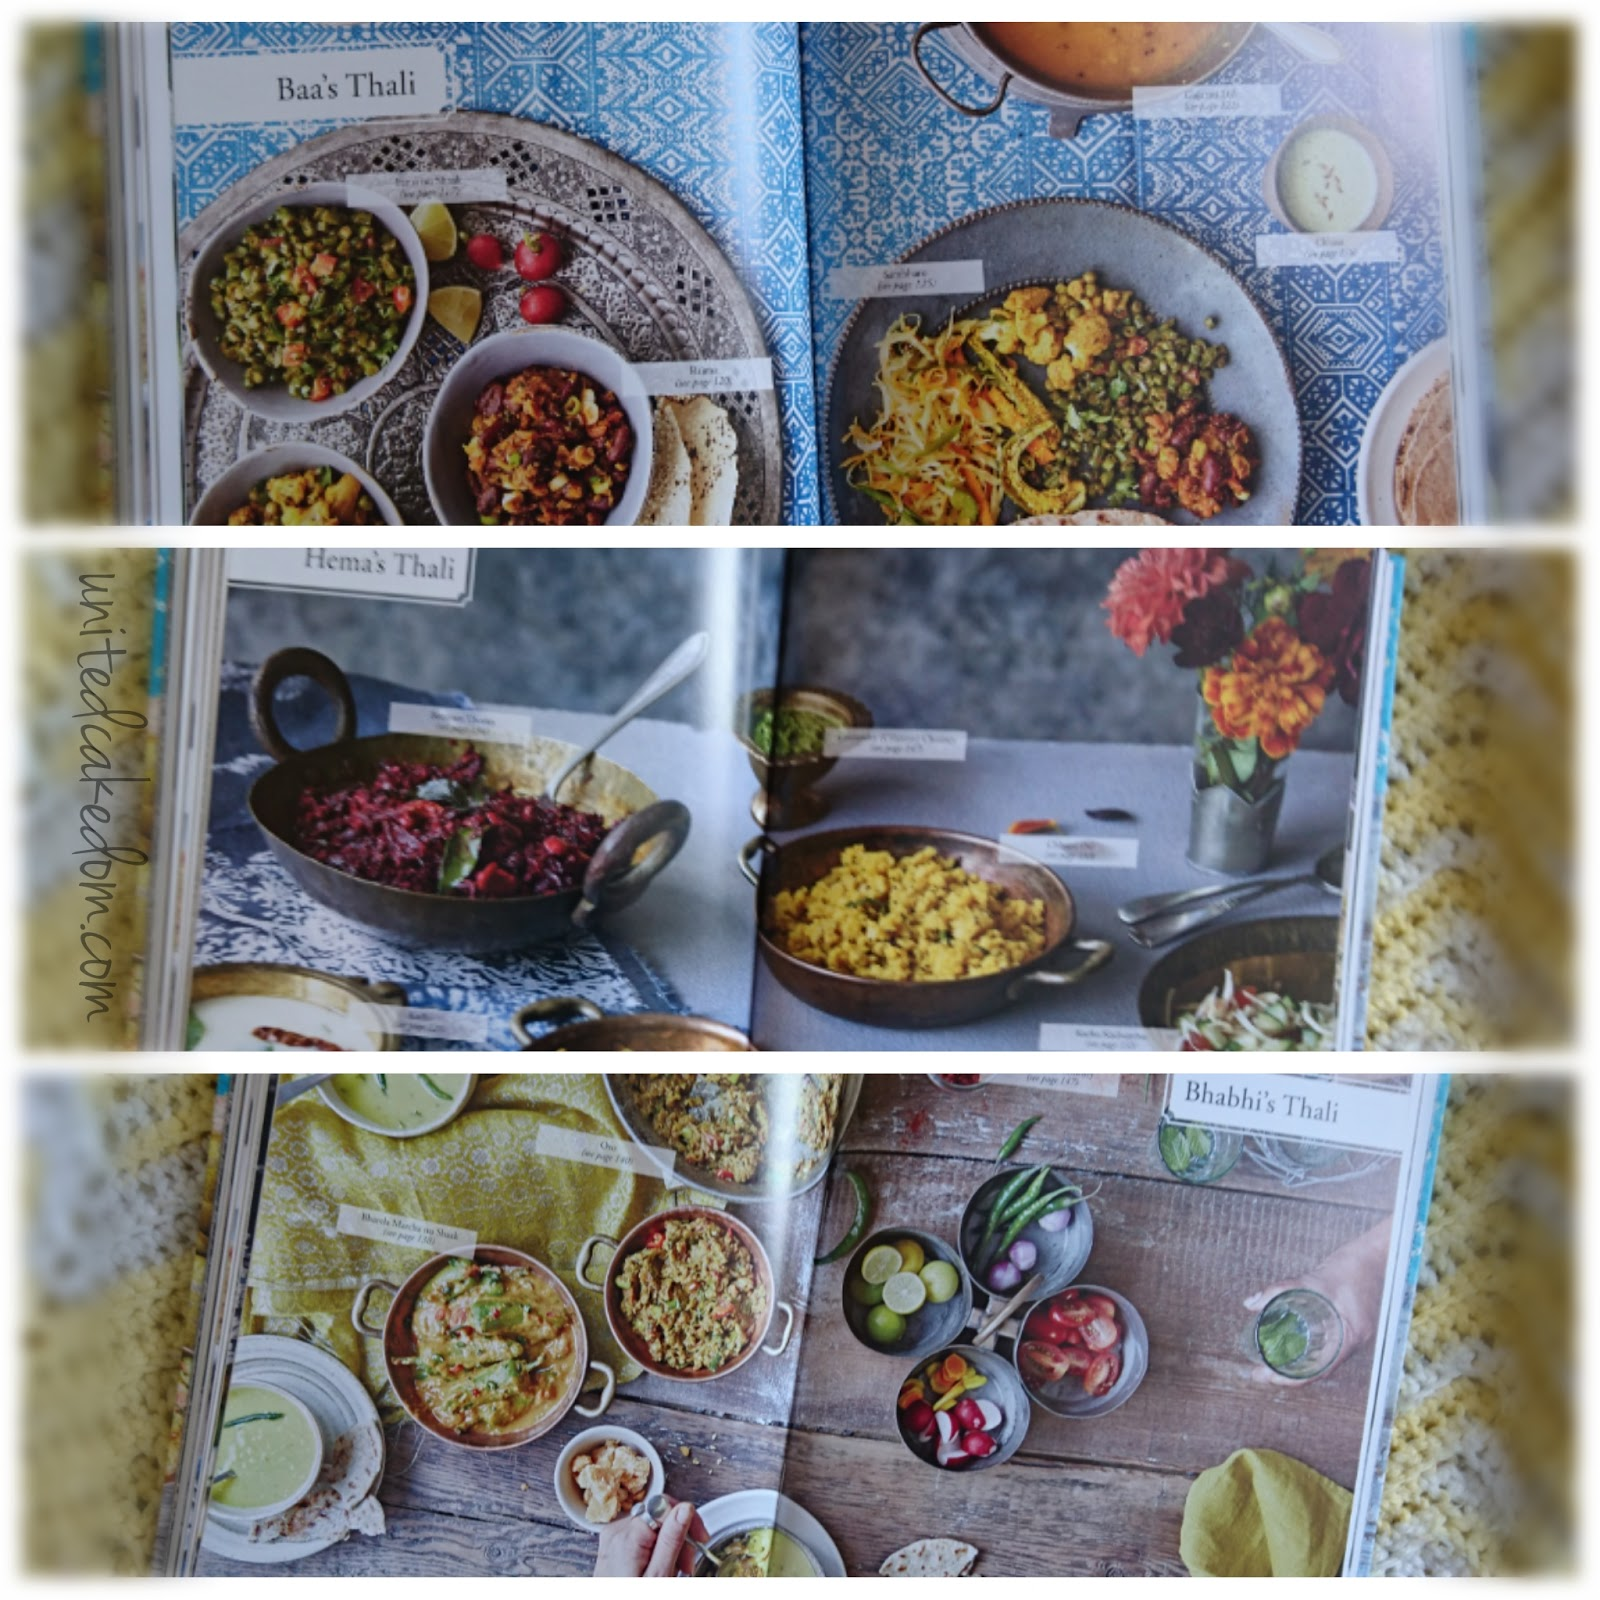 United cakedom saffron soul by mira manek book review i am no vegetarian and my experience with indian food is left to westernised restaurants and i cant wait to get stuck into the recipes in this book forumfinder Gallery